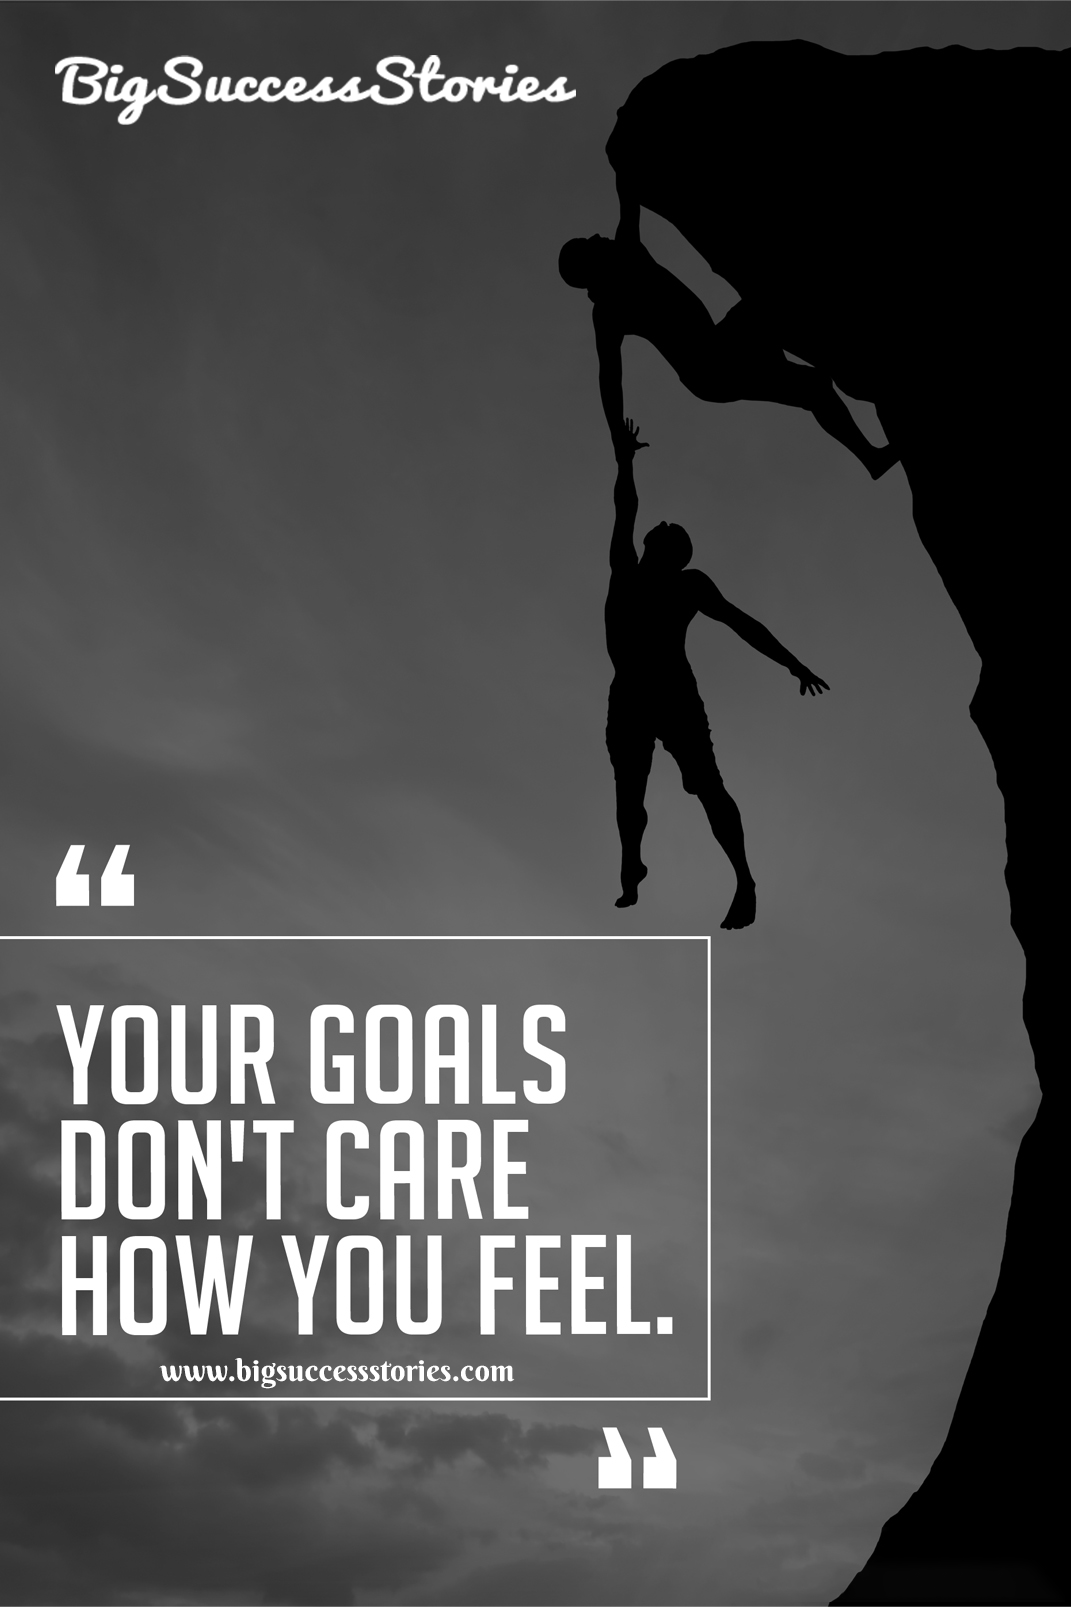 Bilderesultat for your goals don't care how you feel